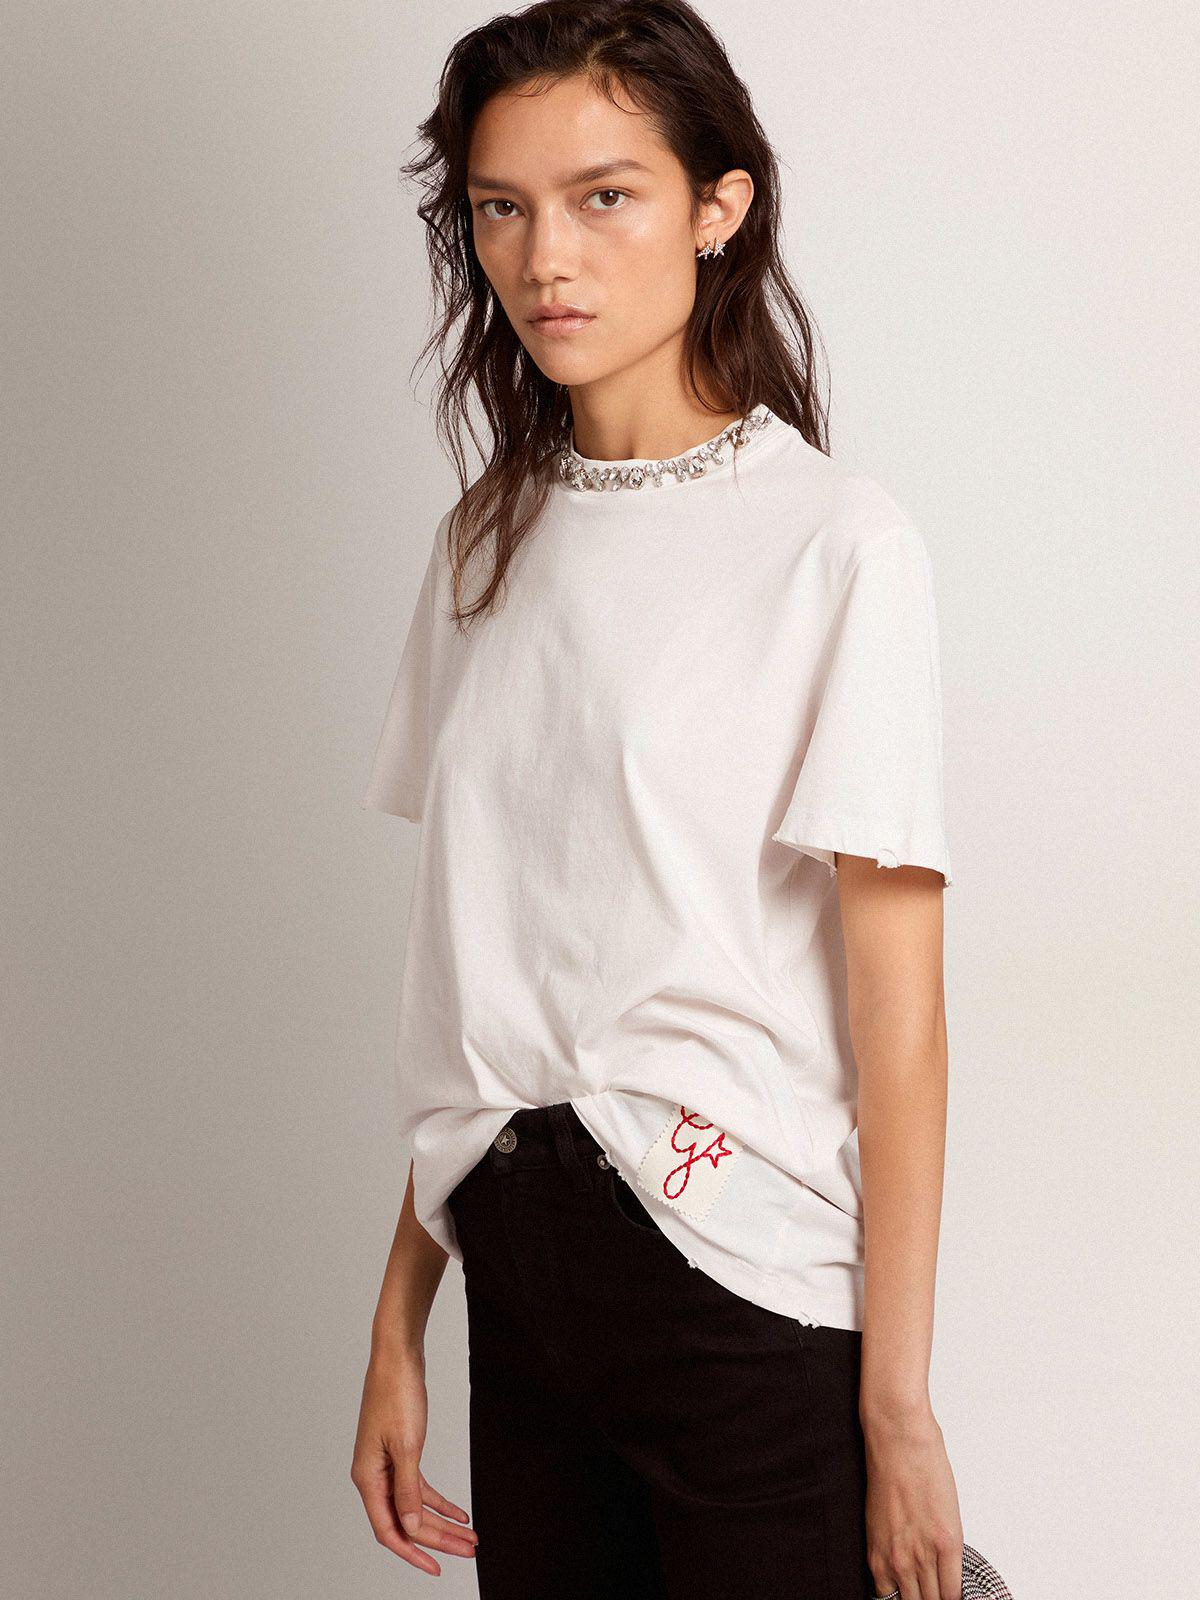 Golden Collection T-shirt in white with cabochon crystals